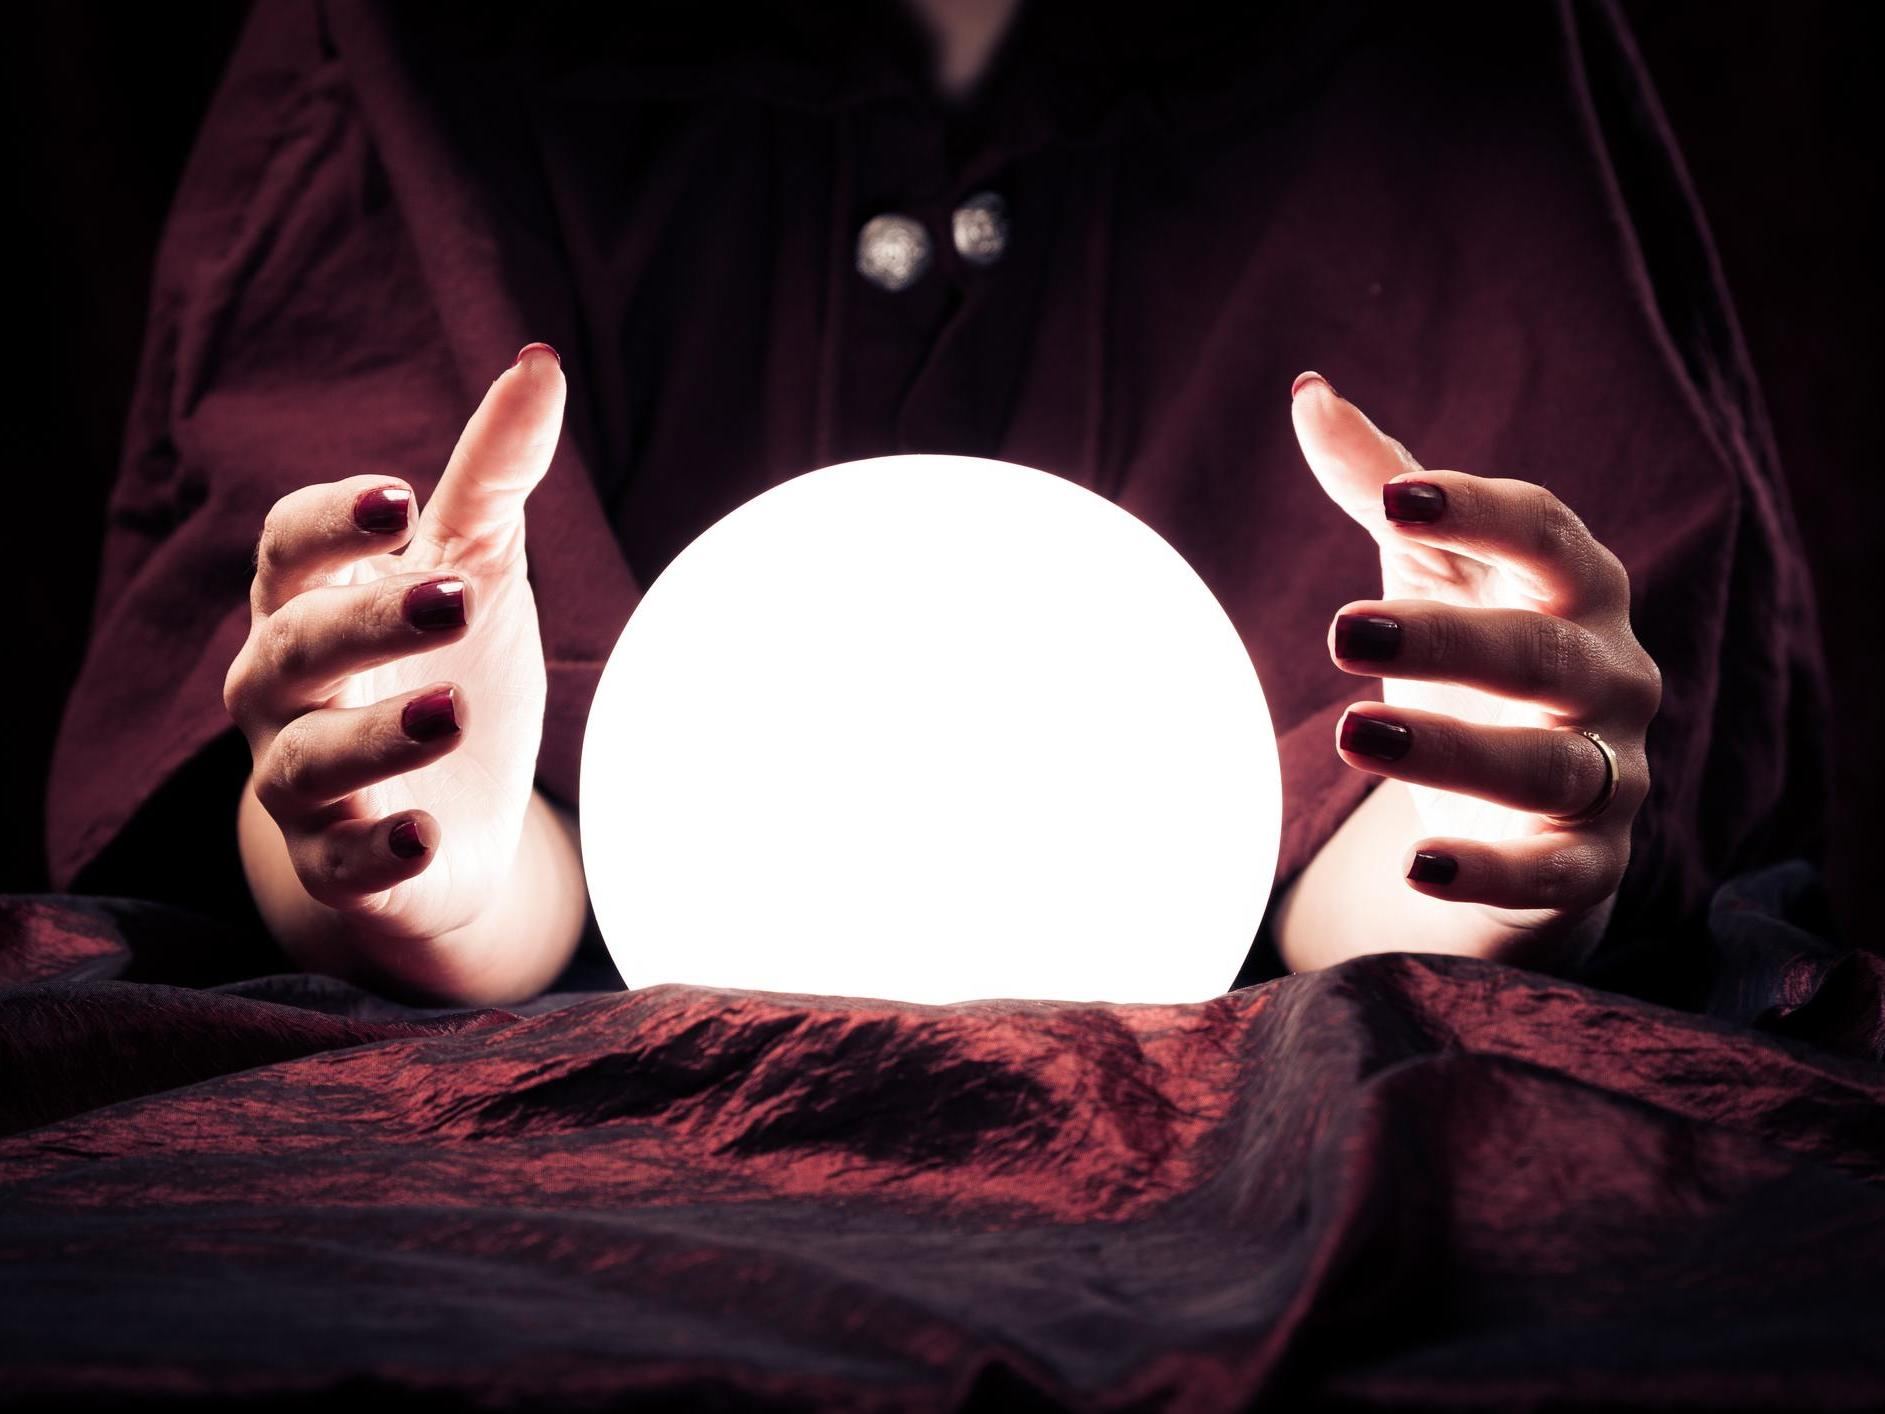 Online 'psychic mediums' are gaining popularity – but are they exploiting  people's grief? | The Independent | The Independent